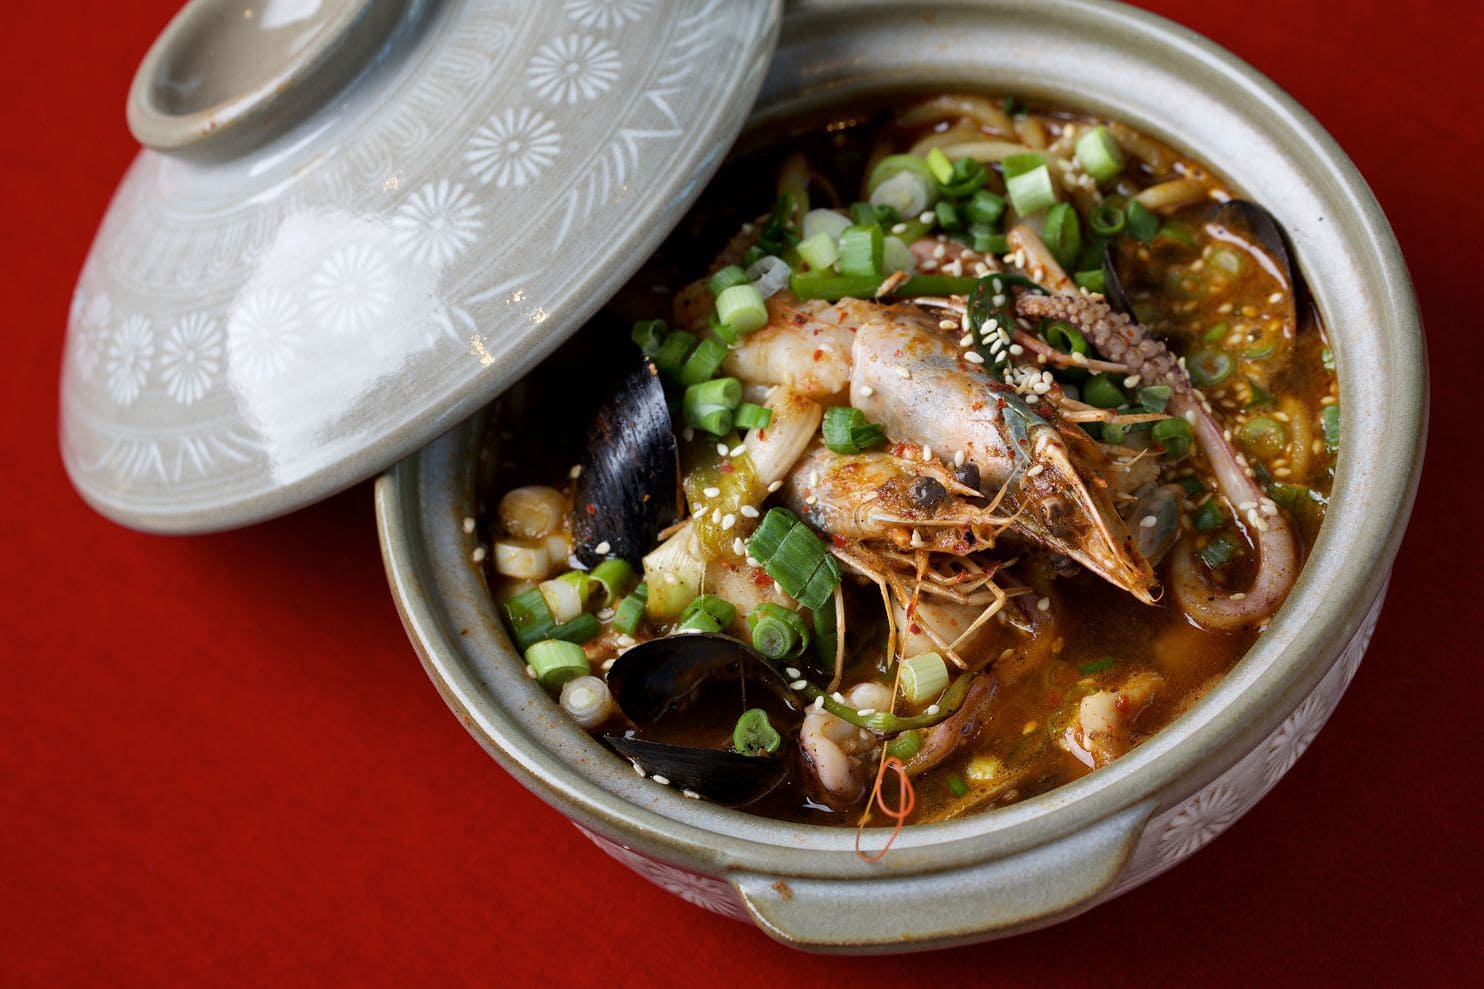 """""""Jjampong, a Korean seafood and egg noodle dish, is on the top portion of the three-part menu at Kaliwa. (Deb Lindsey/For The Washington Post)"""